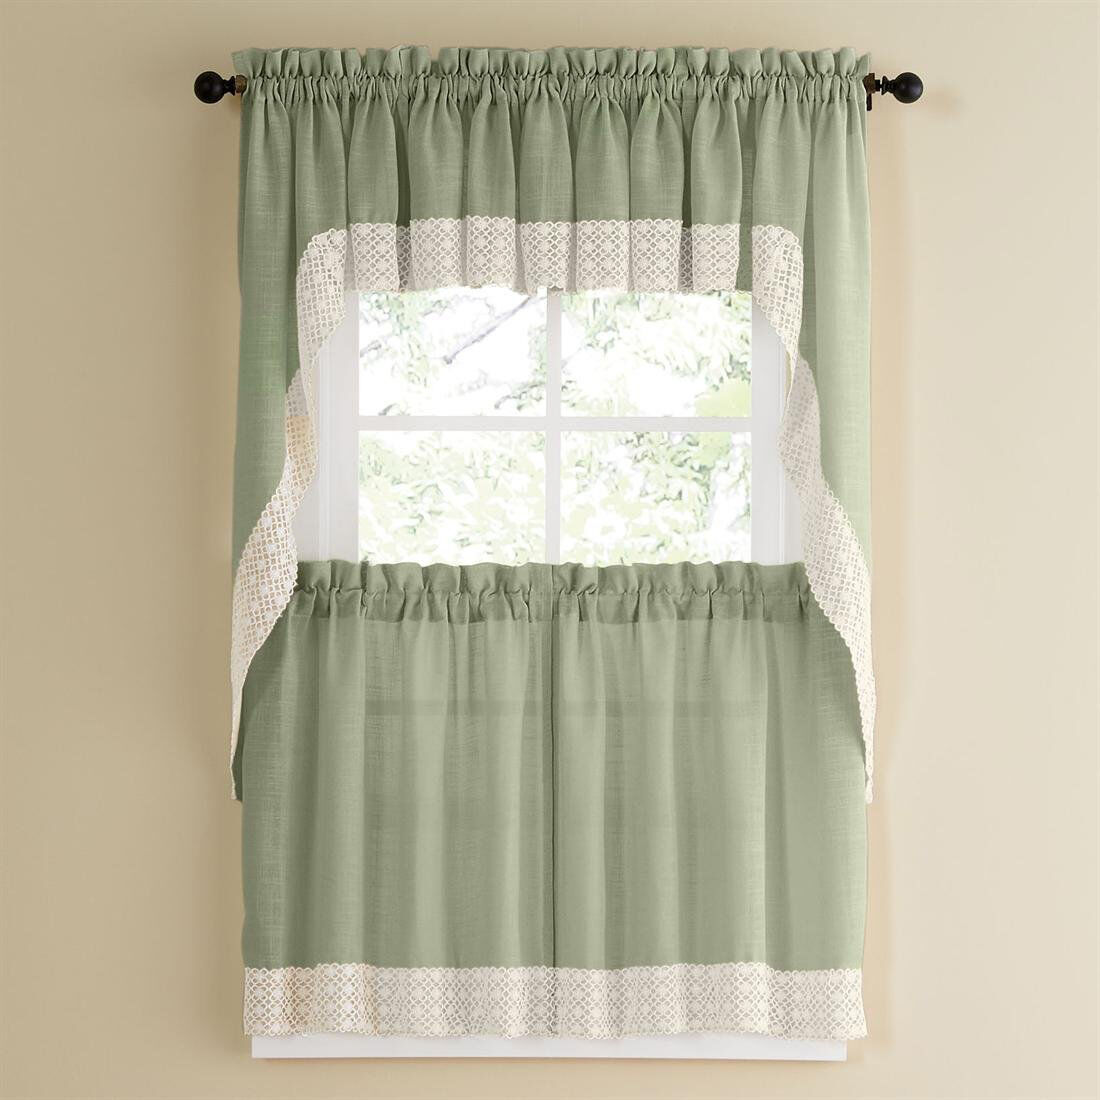 Primary image for Salem Kitchen Curtain - Sage w/White Lace Trim - Lorraine Home Fashions